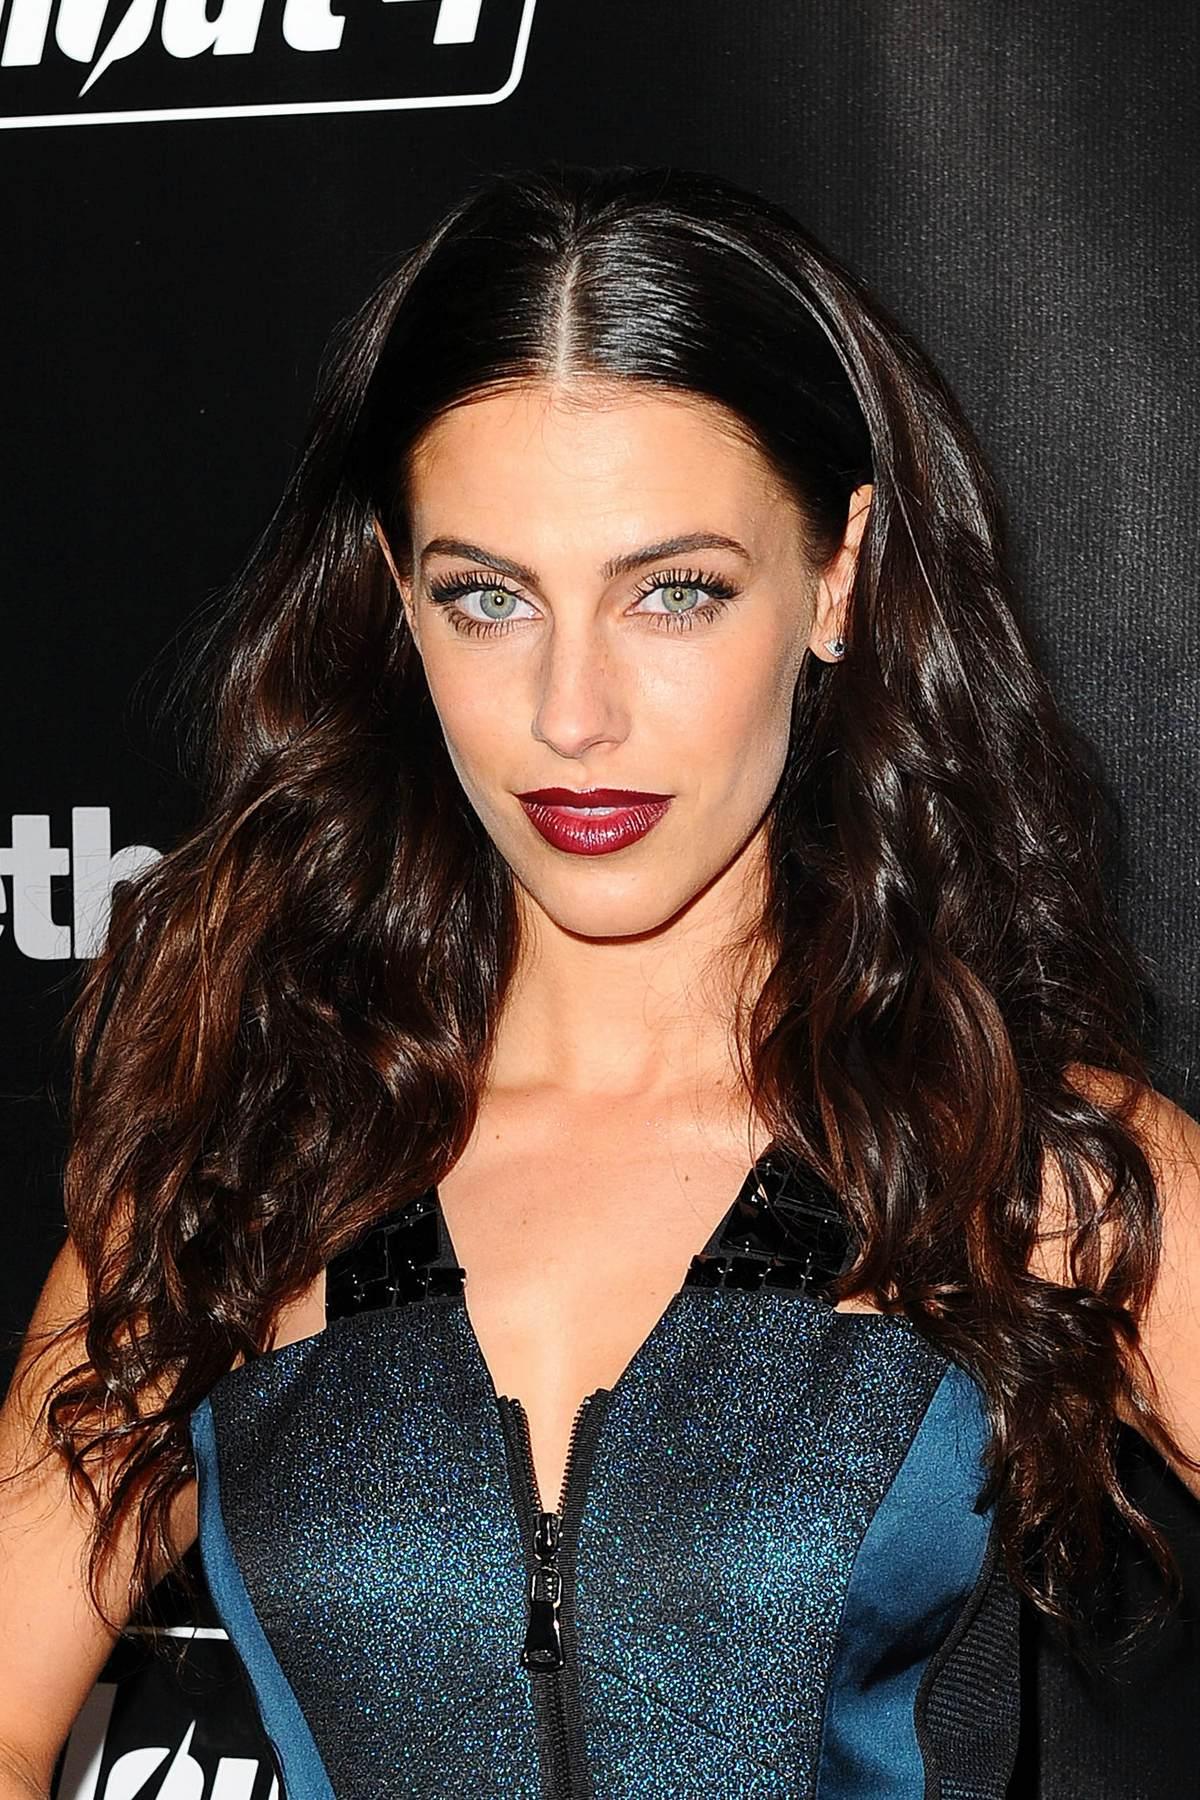 jessica lowndes interviewjessica lowndes gif, jessica lowndes tumblr gif, jessica lowndes 2016, jessica lowndes фото, jessica lowndes listal, jessica lowndes source, jessica lowndes style, jessica lowndes dated, jessica lowndes makeup, jessica lowndes 90210, jessica lowndes saying goodbye, jessica lowndes png, jessica lowndes fool, jessica lowndes site, jessica lowndes wdw, jessica lowndes screencaps, jessica lowndes underneath the mask, jessica lowndes news, jessica lowndes blog, jessica lowndes interview